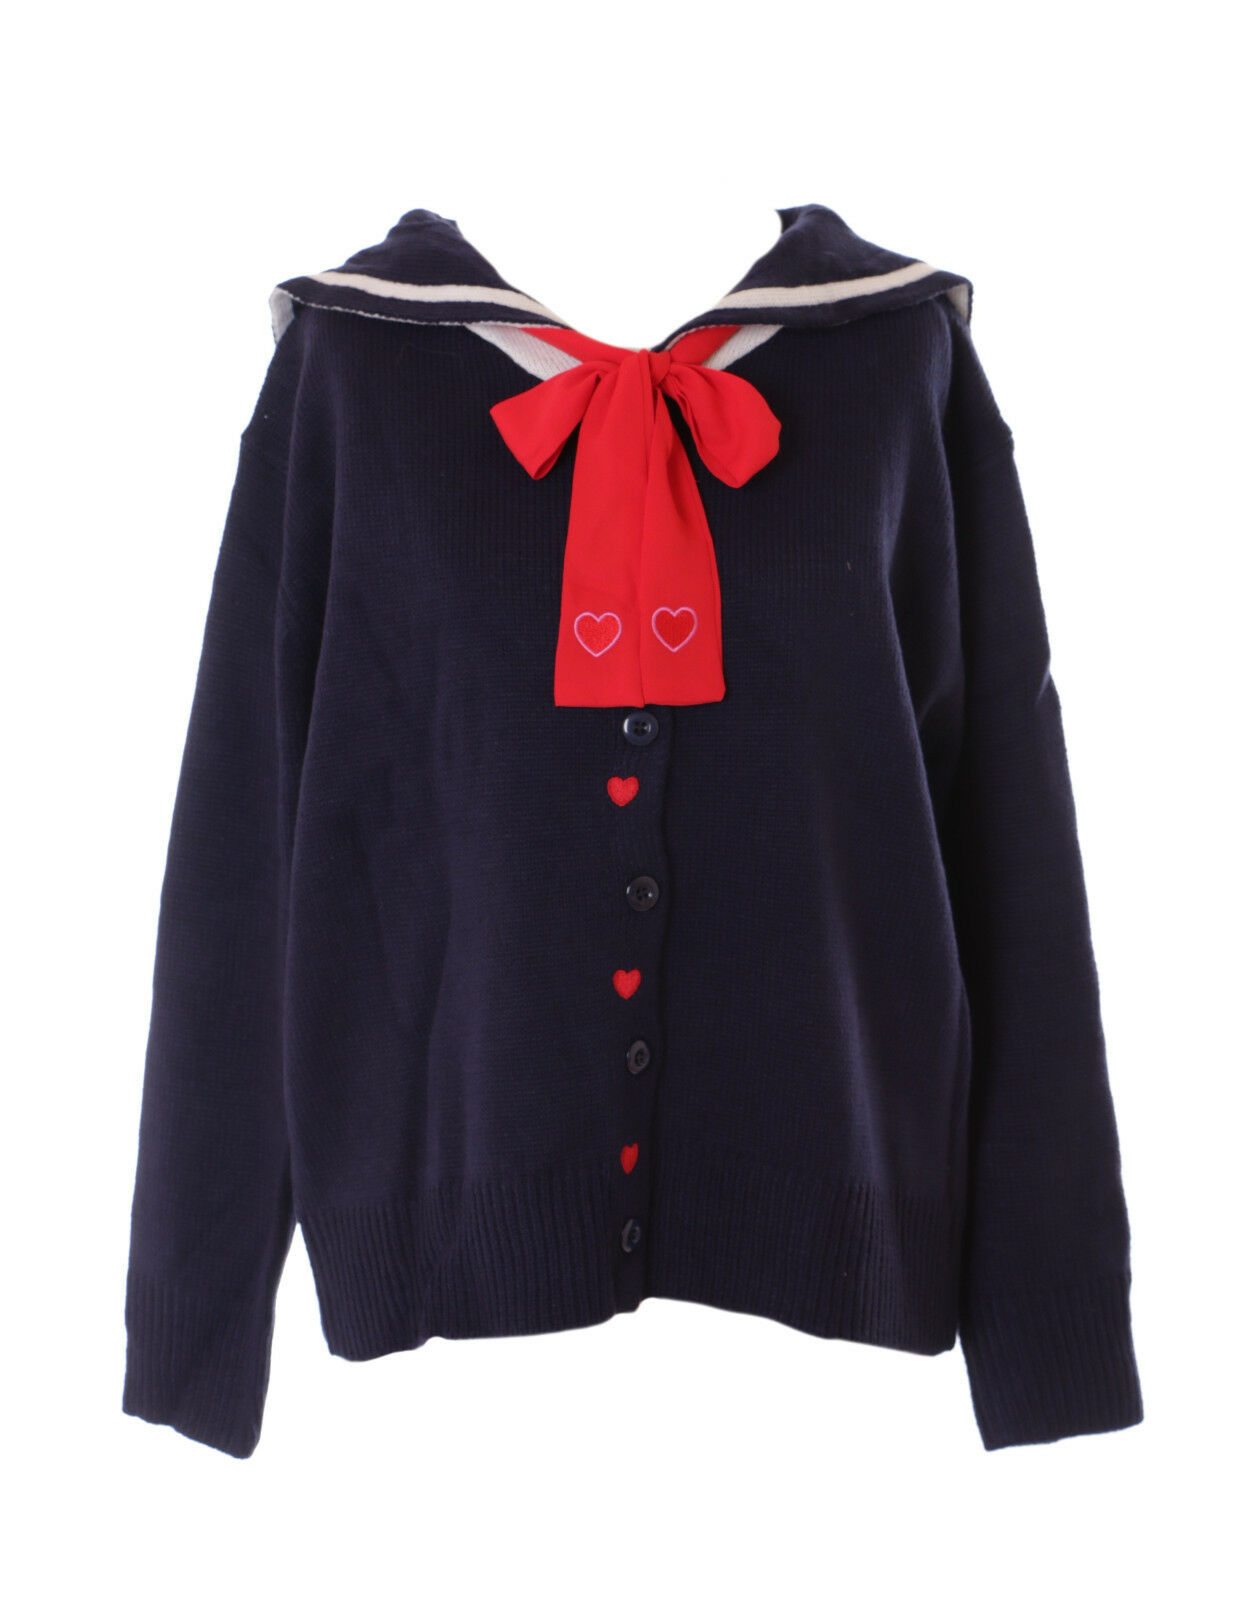 Ts-136-2 bluee Sailor Heart Pastel Goth Lolita Knitted Sweater Cardigan